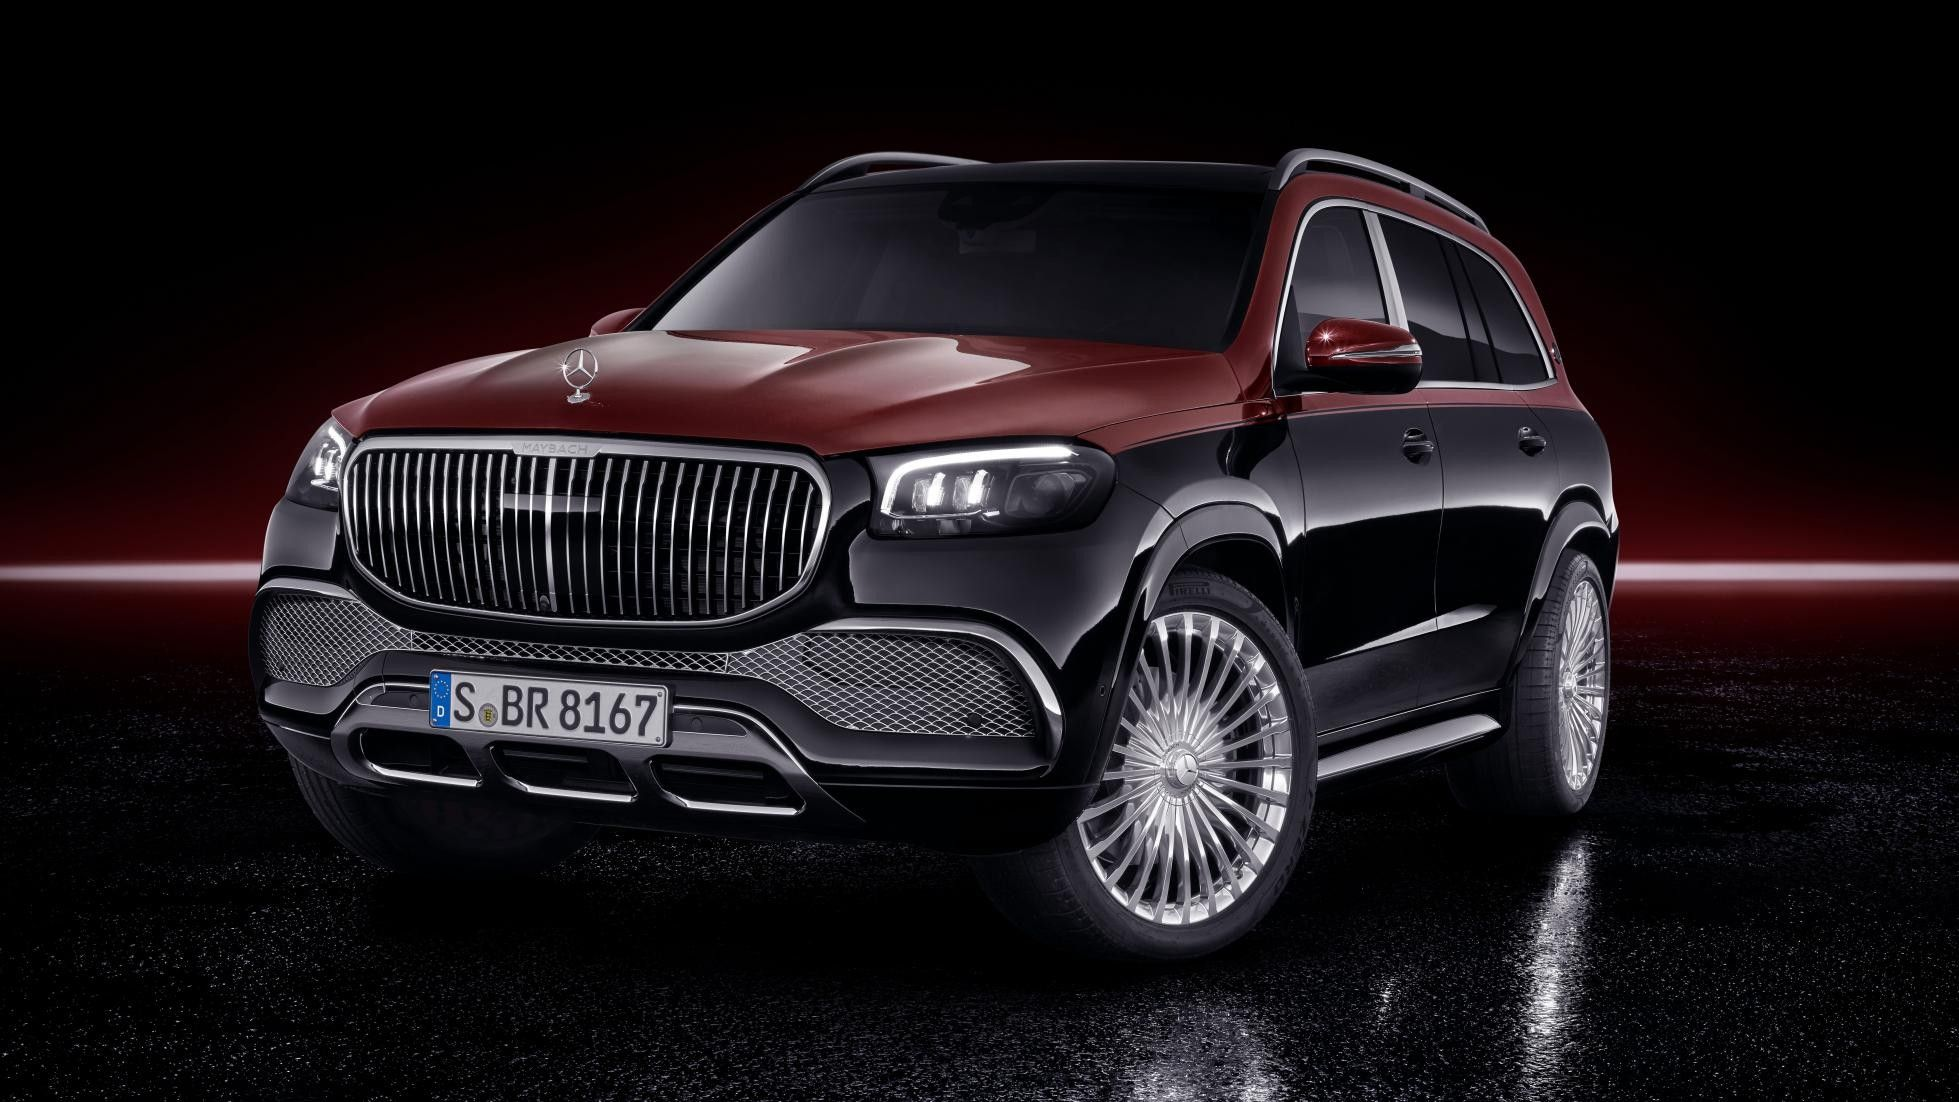 Maybach Gls 600 Mercedes Maybach Maybach Luxury Suv